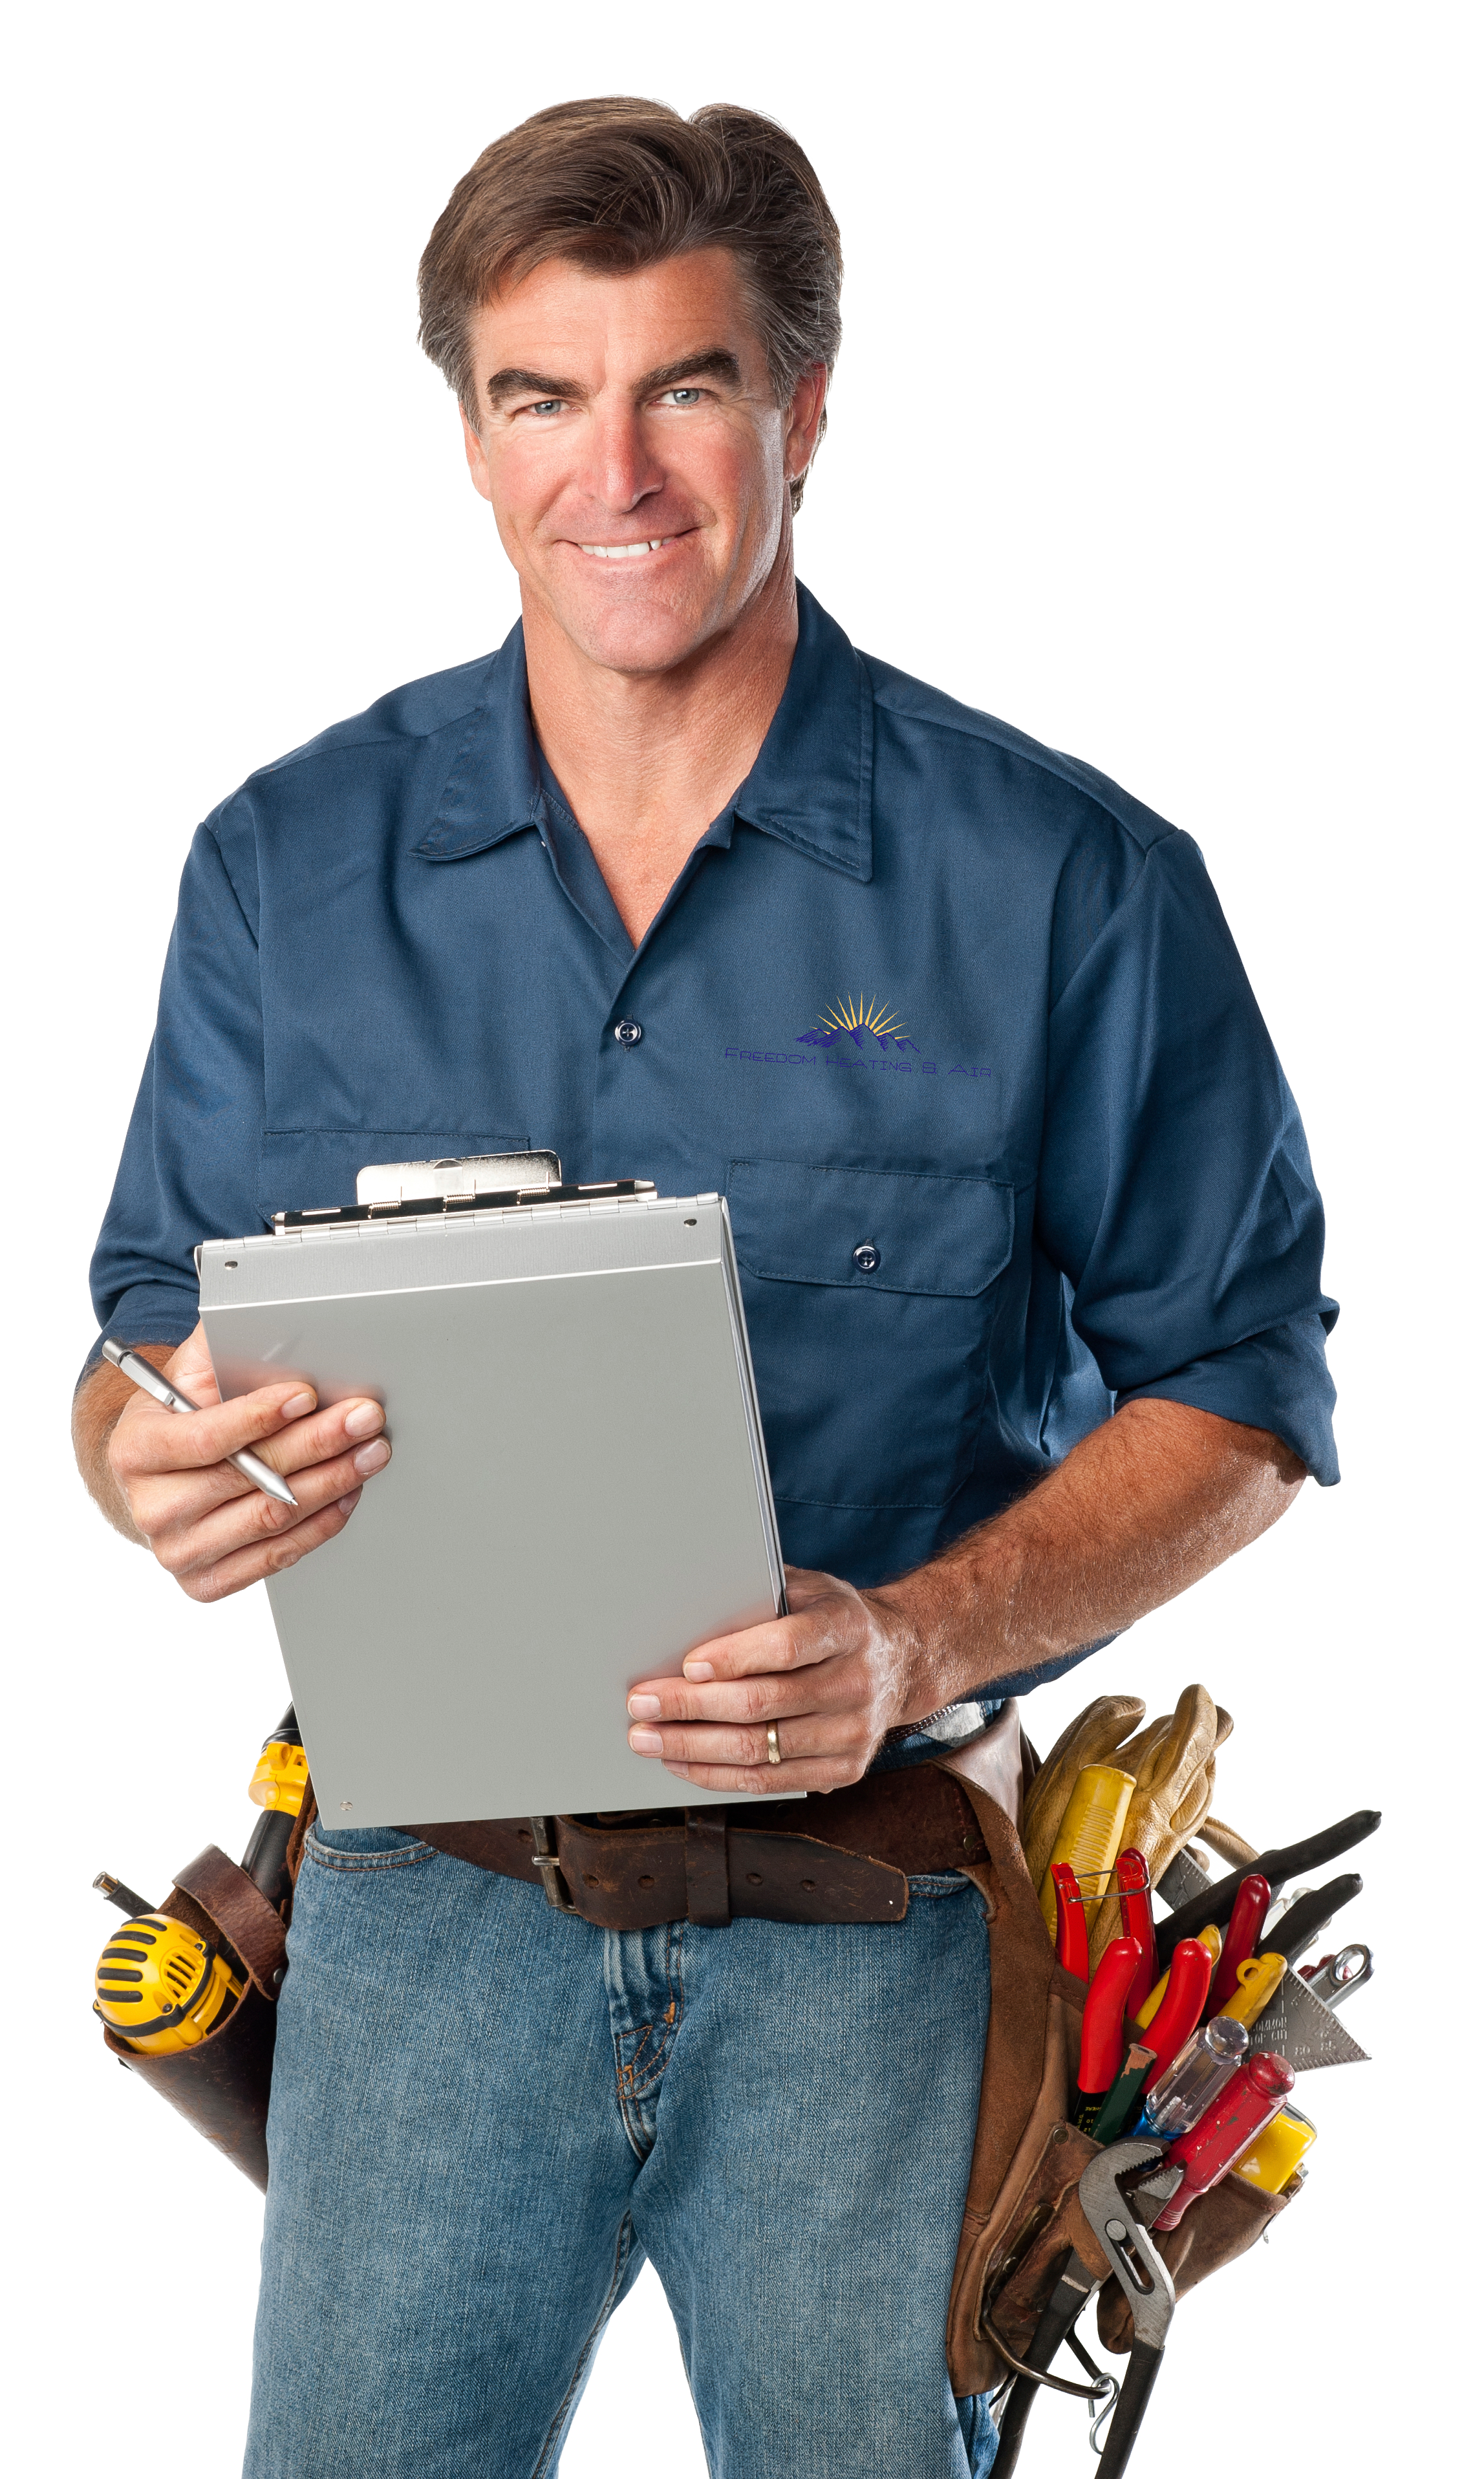 hvac tech with clipboard and tools